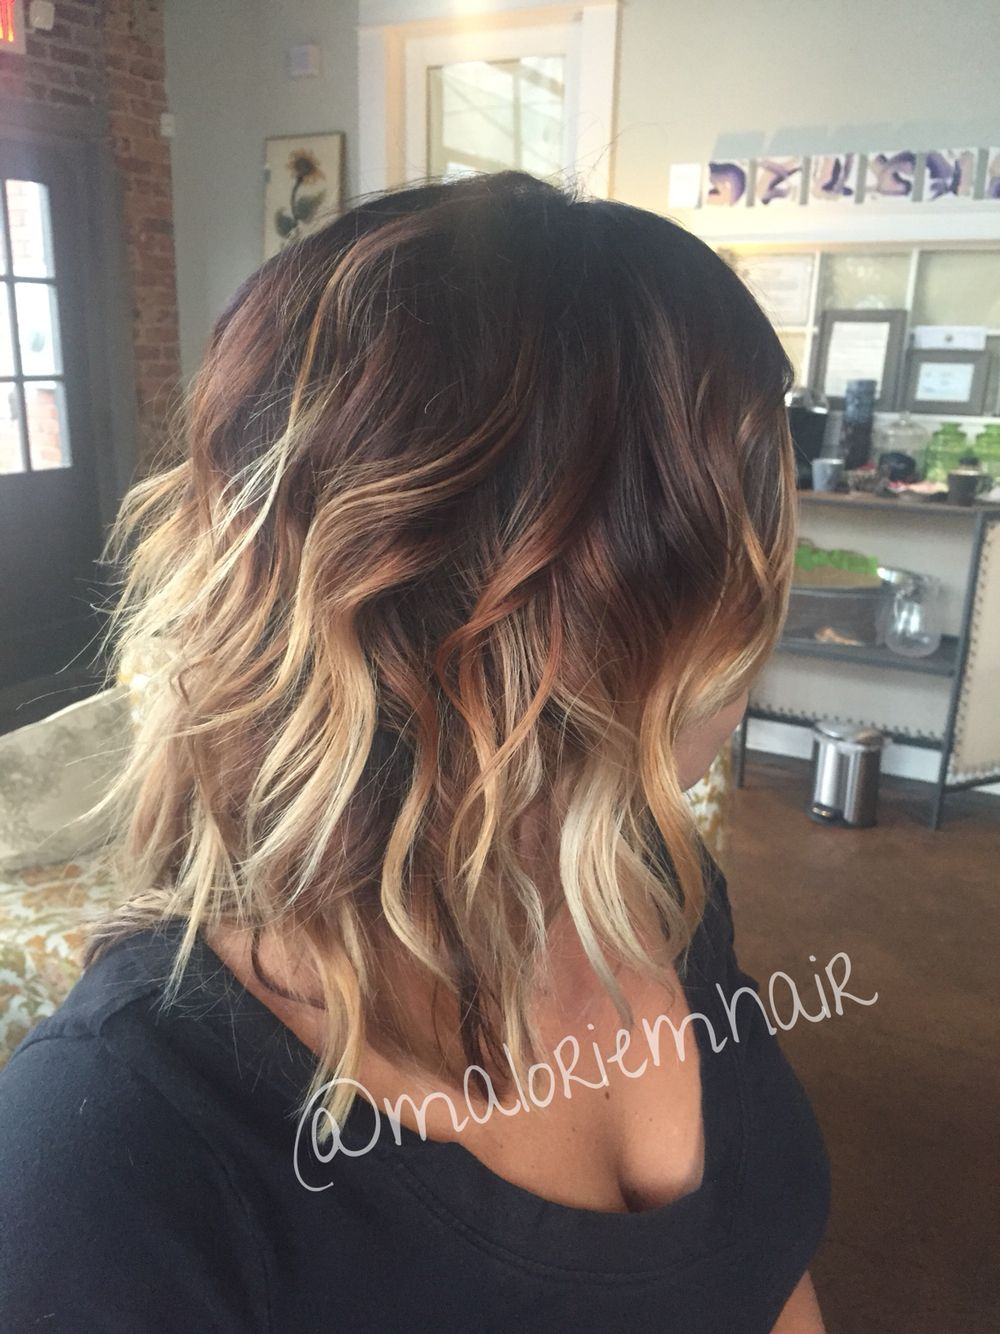 Color melt ombre balayage hair hair by me pinterest balayage ombre and pixie haircut - Technique ombre hair ...